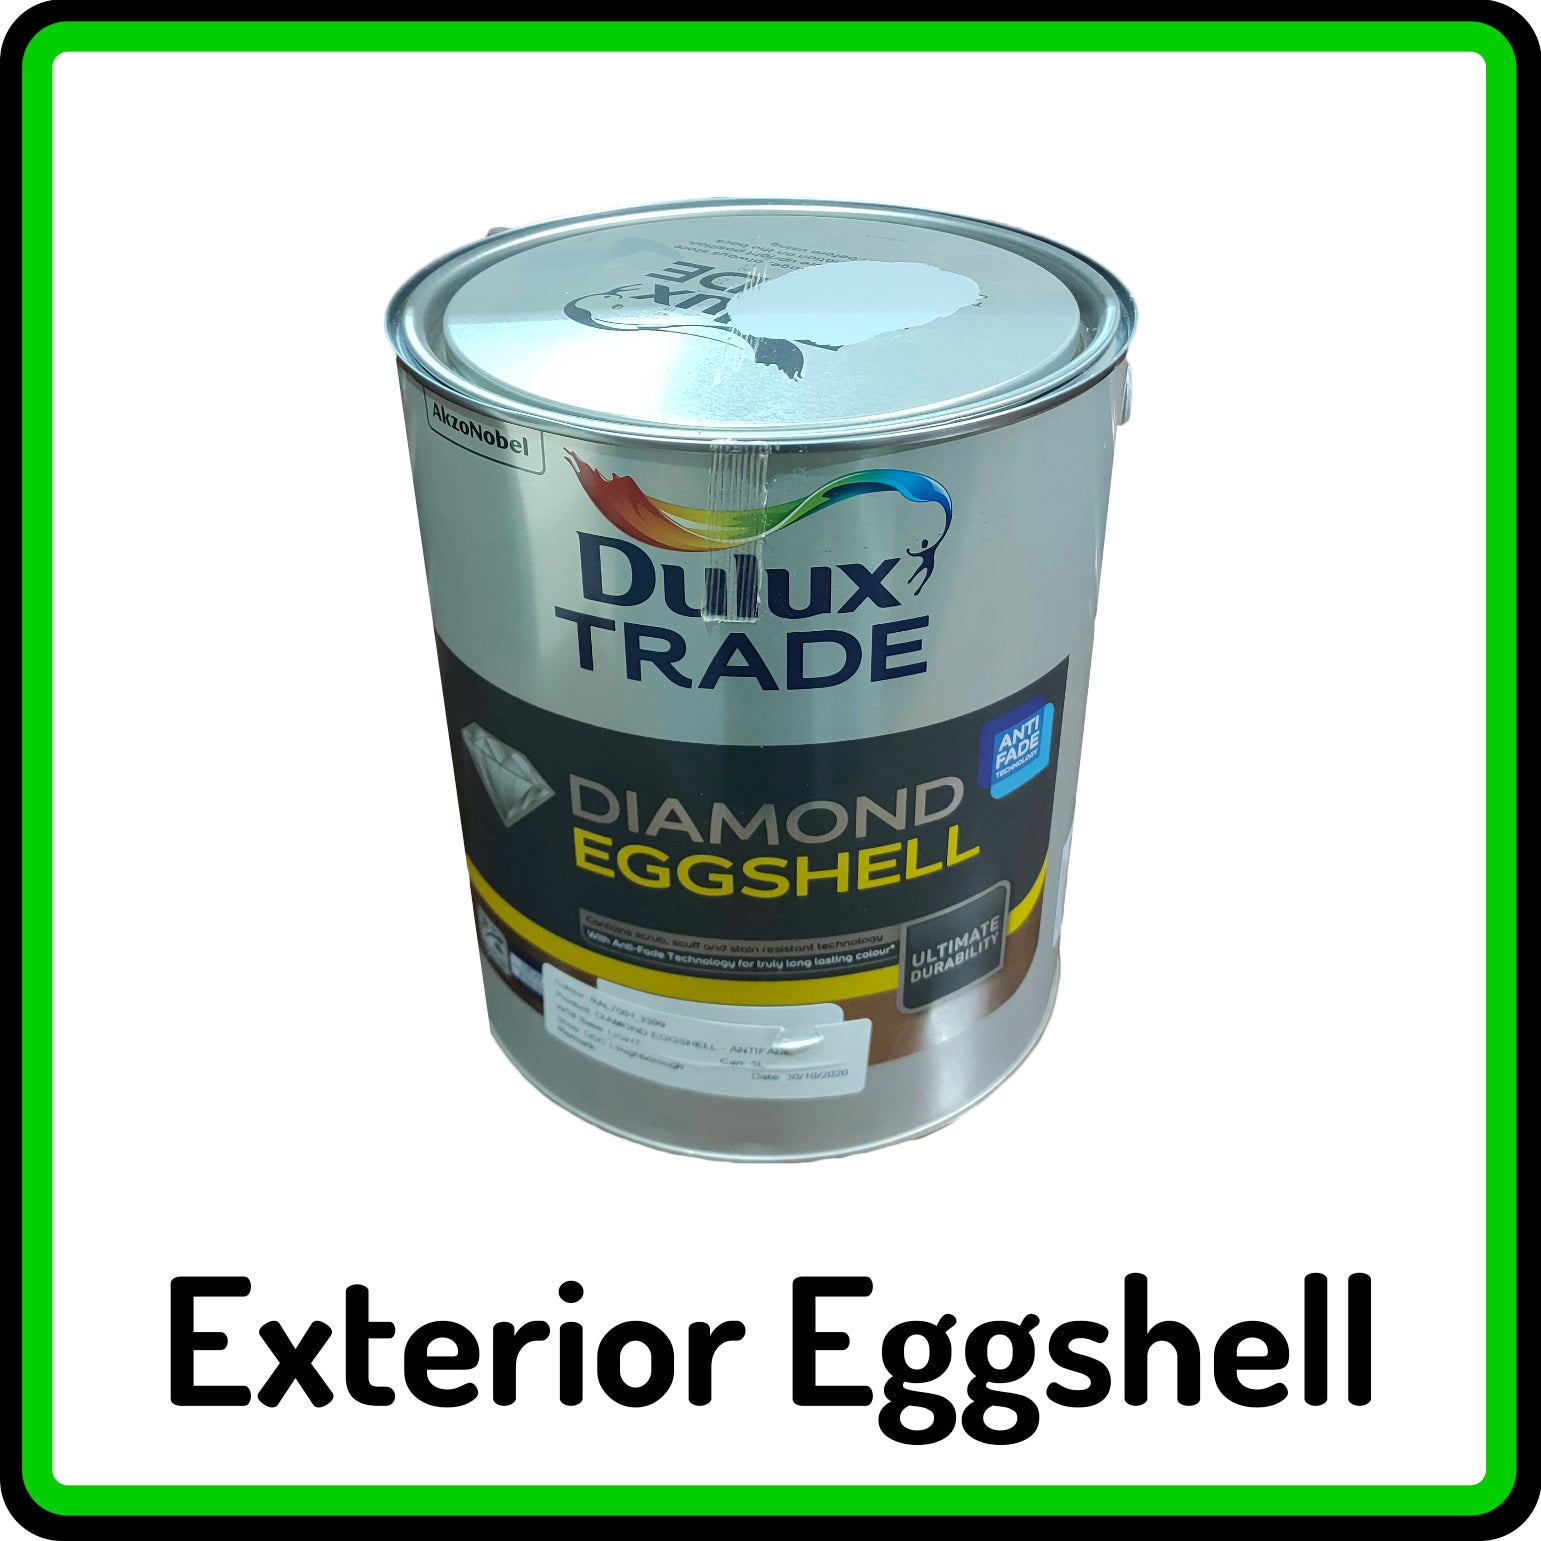 View our selection of Exterior Eggshell Paints